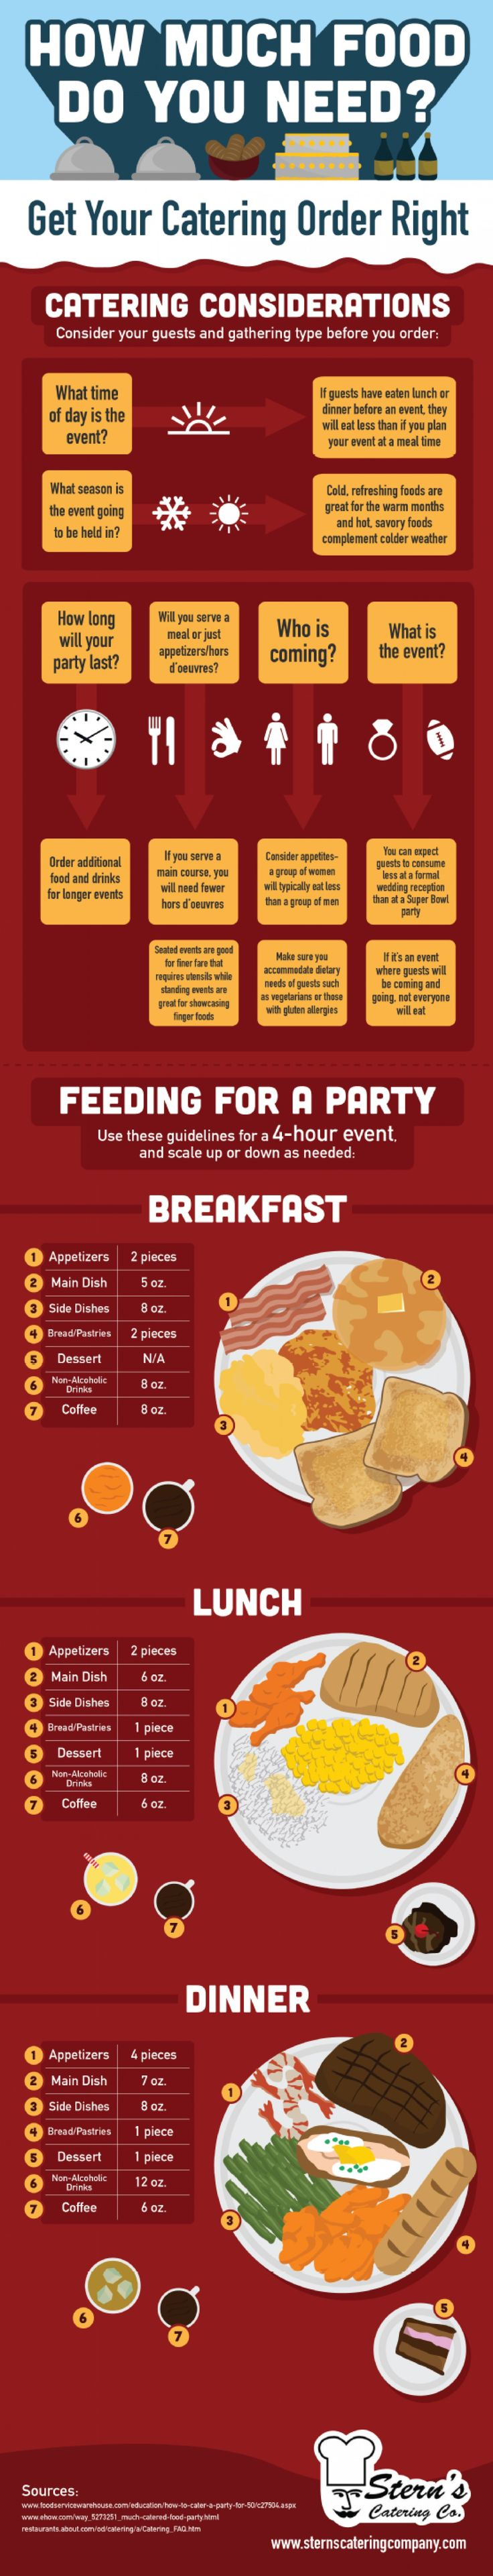 121 best 3g s event planning catering images on pinterest marriage parties and tables